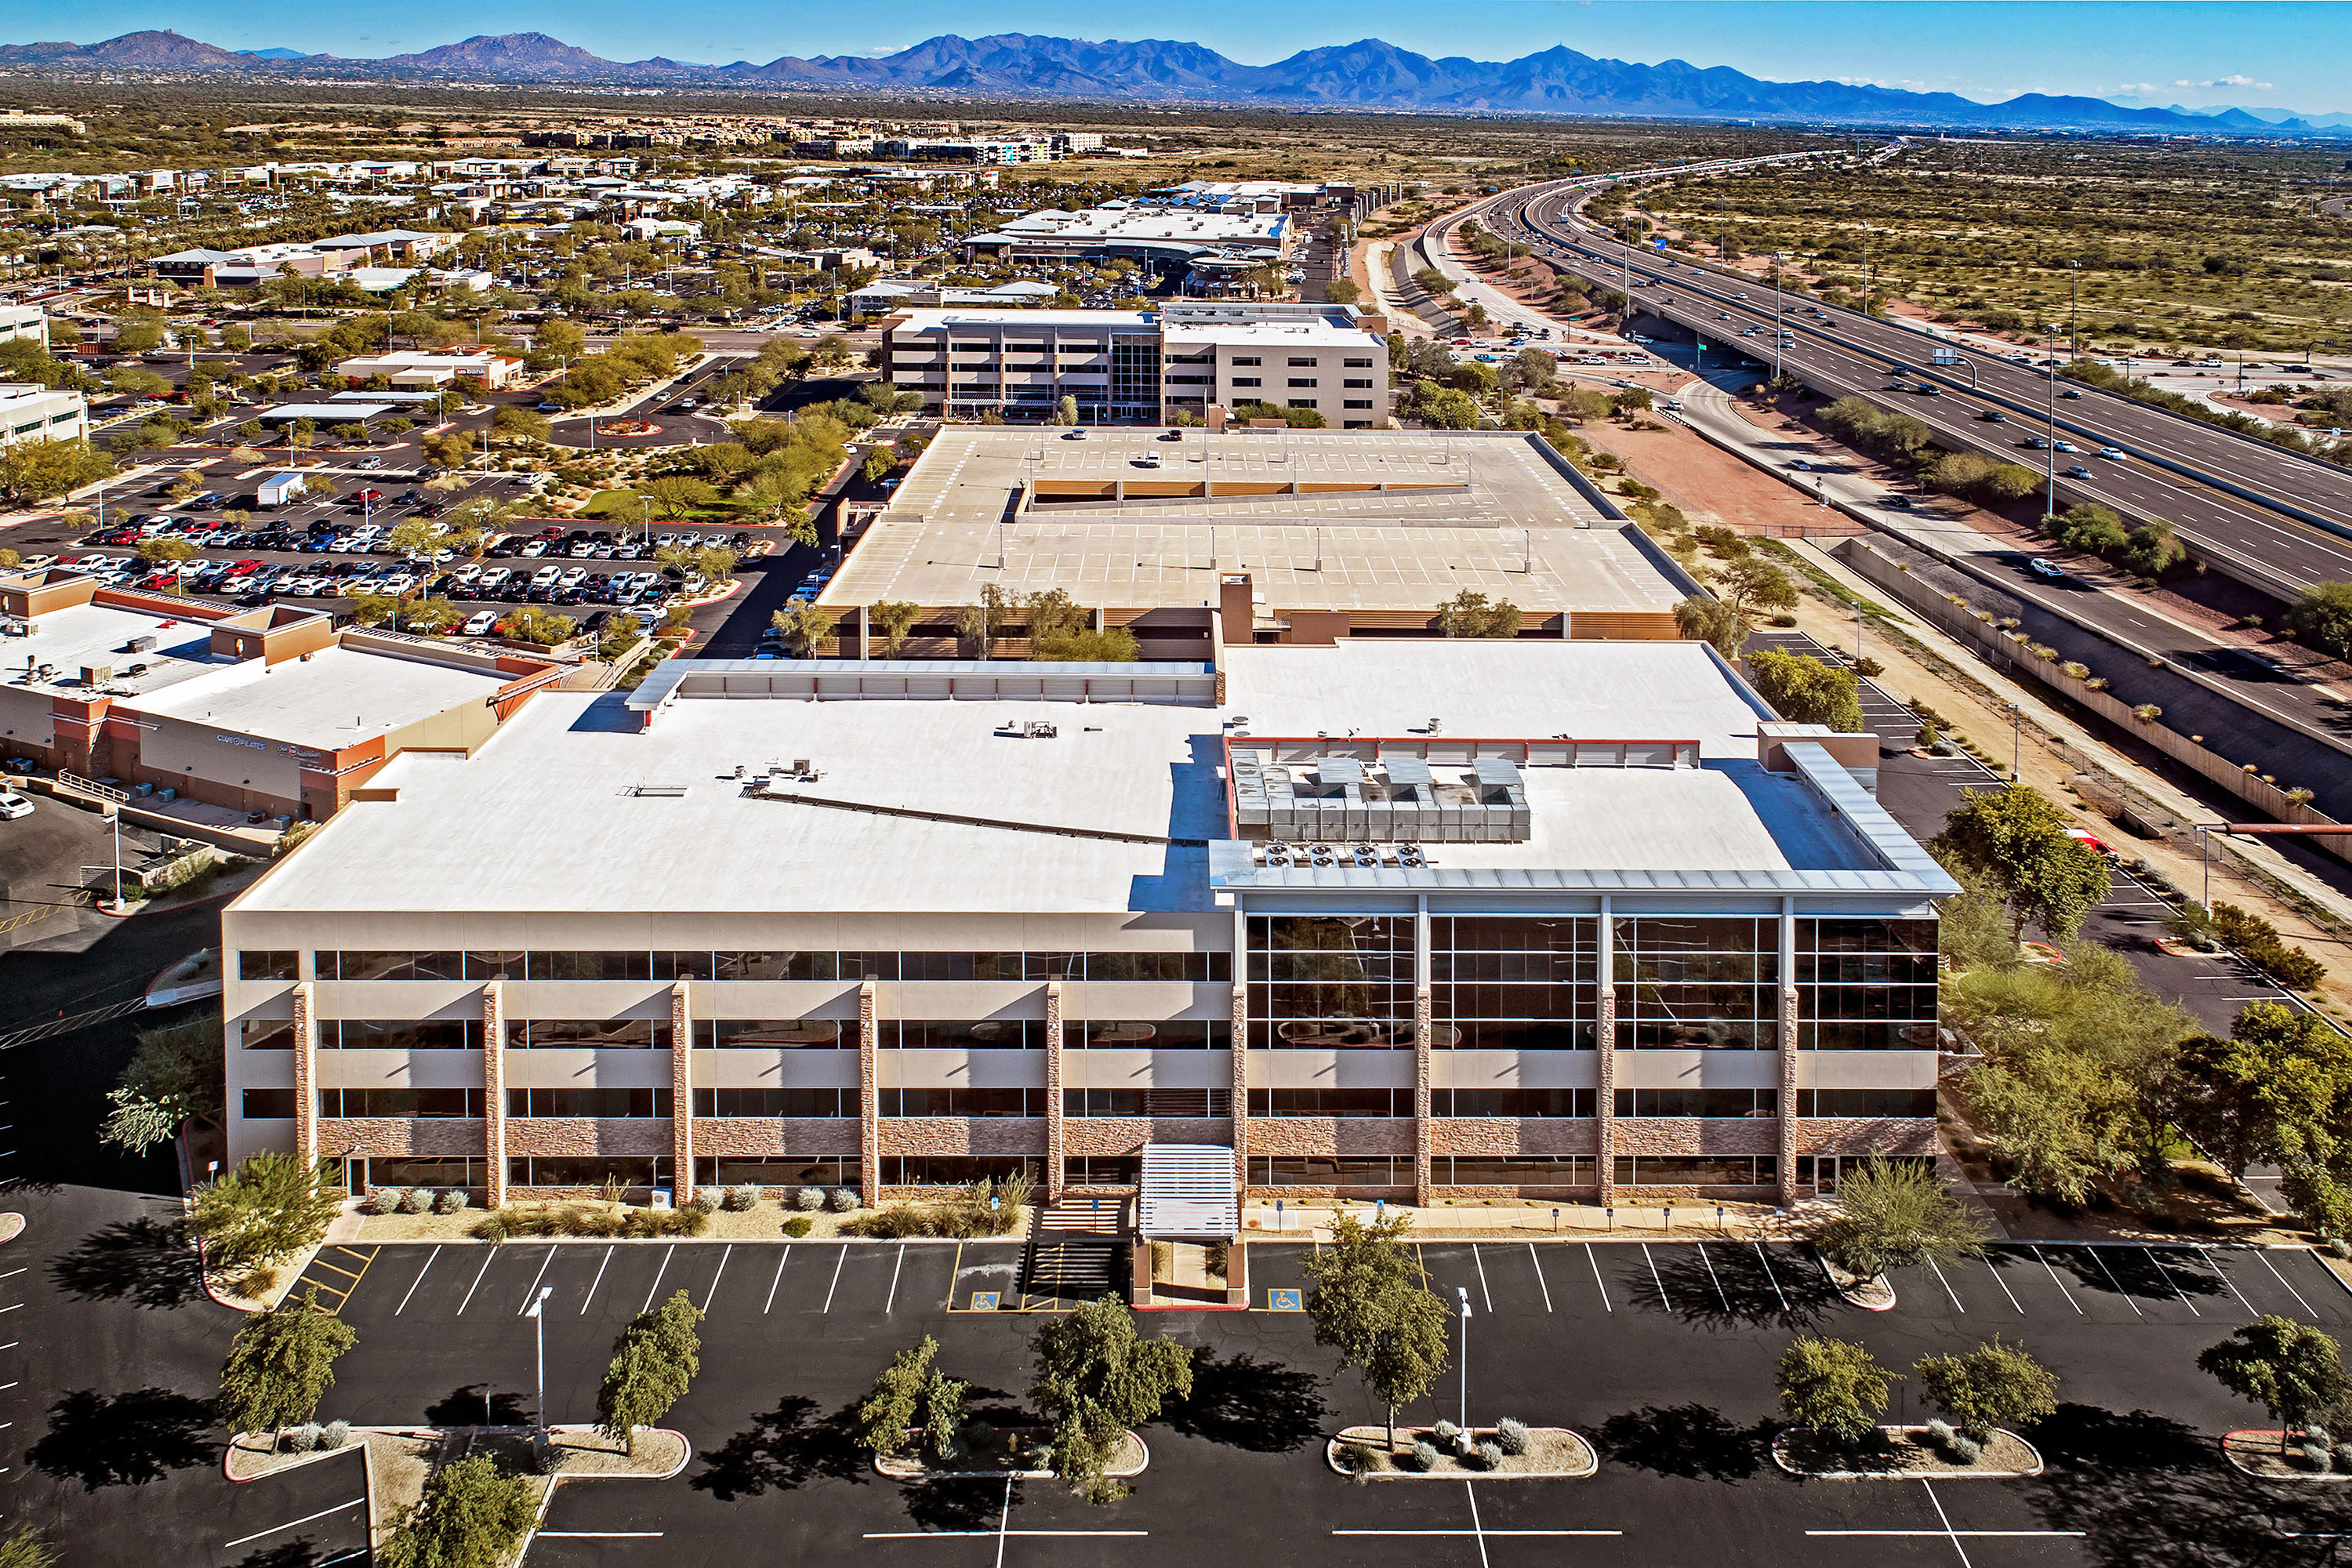 Office Buildings - Scottsdale, Arizona. Aerial Photography by Alan Blakely.